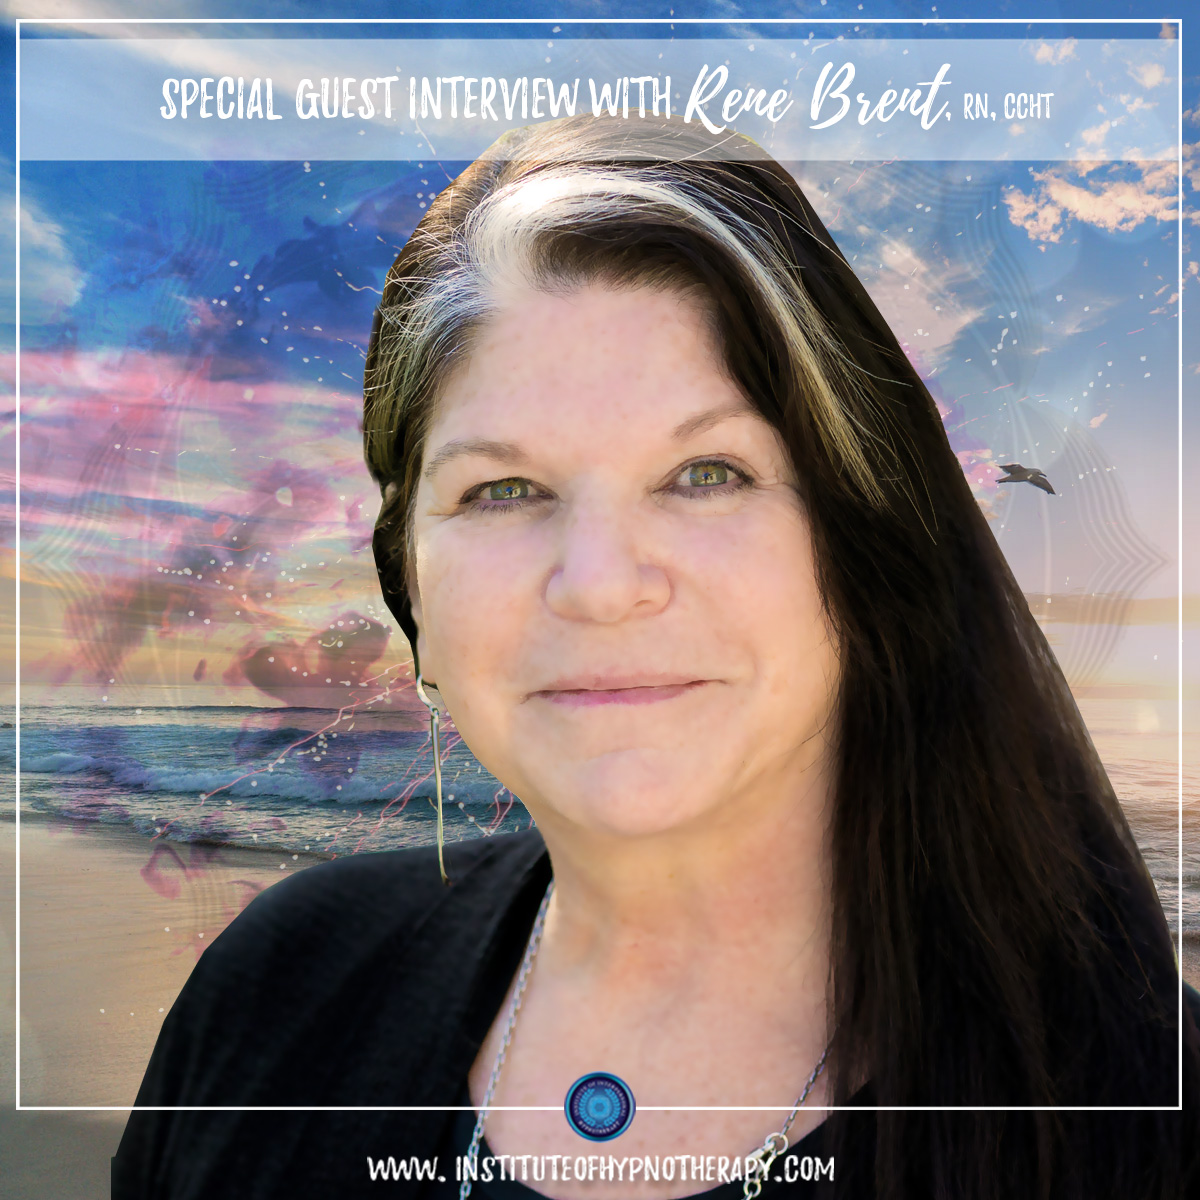 Conscious Community – Special Guest Interview with Rene Brent, RN, CCHT